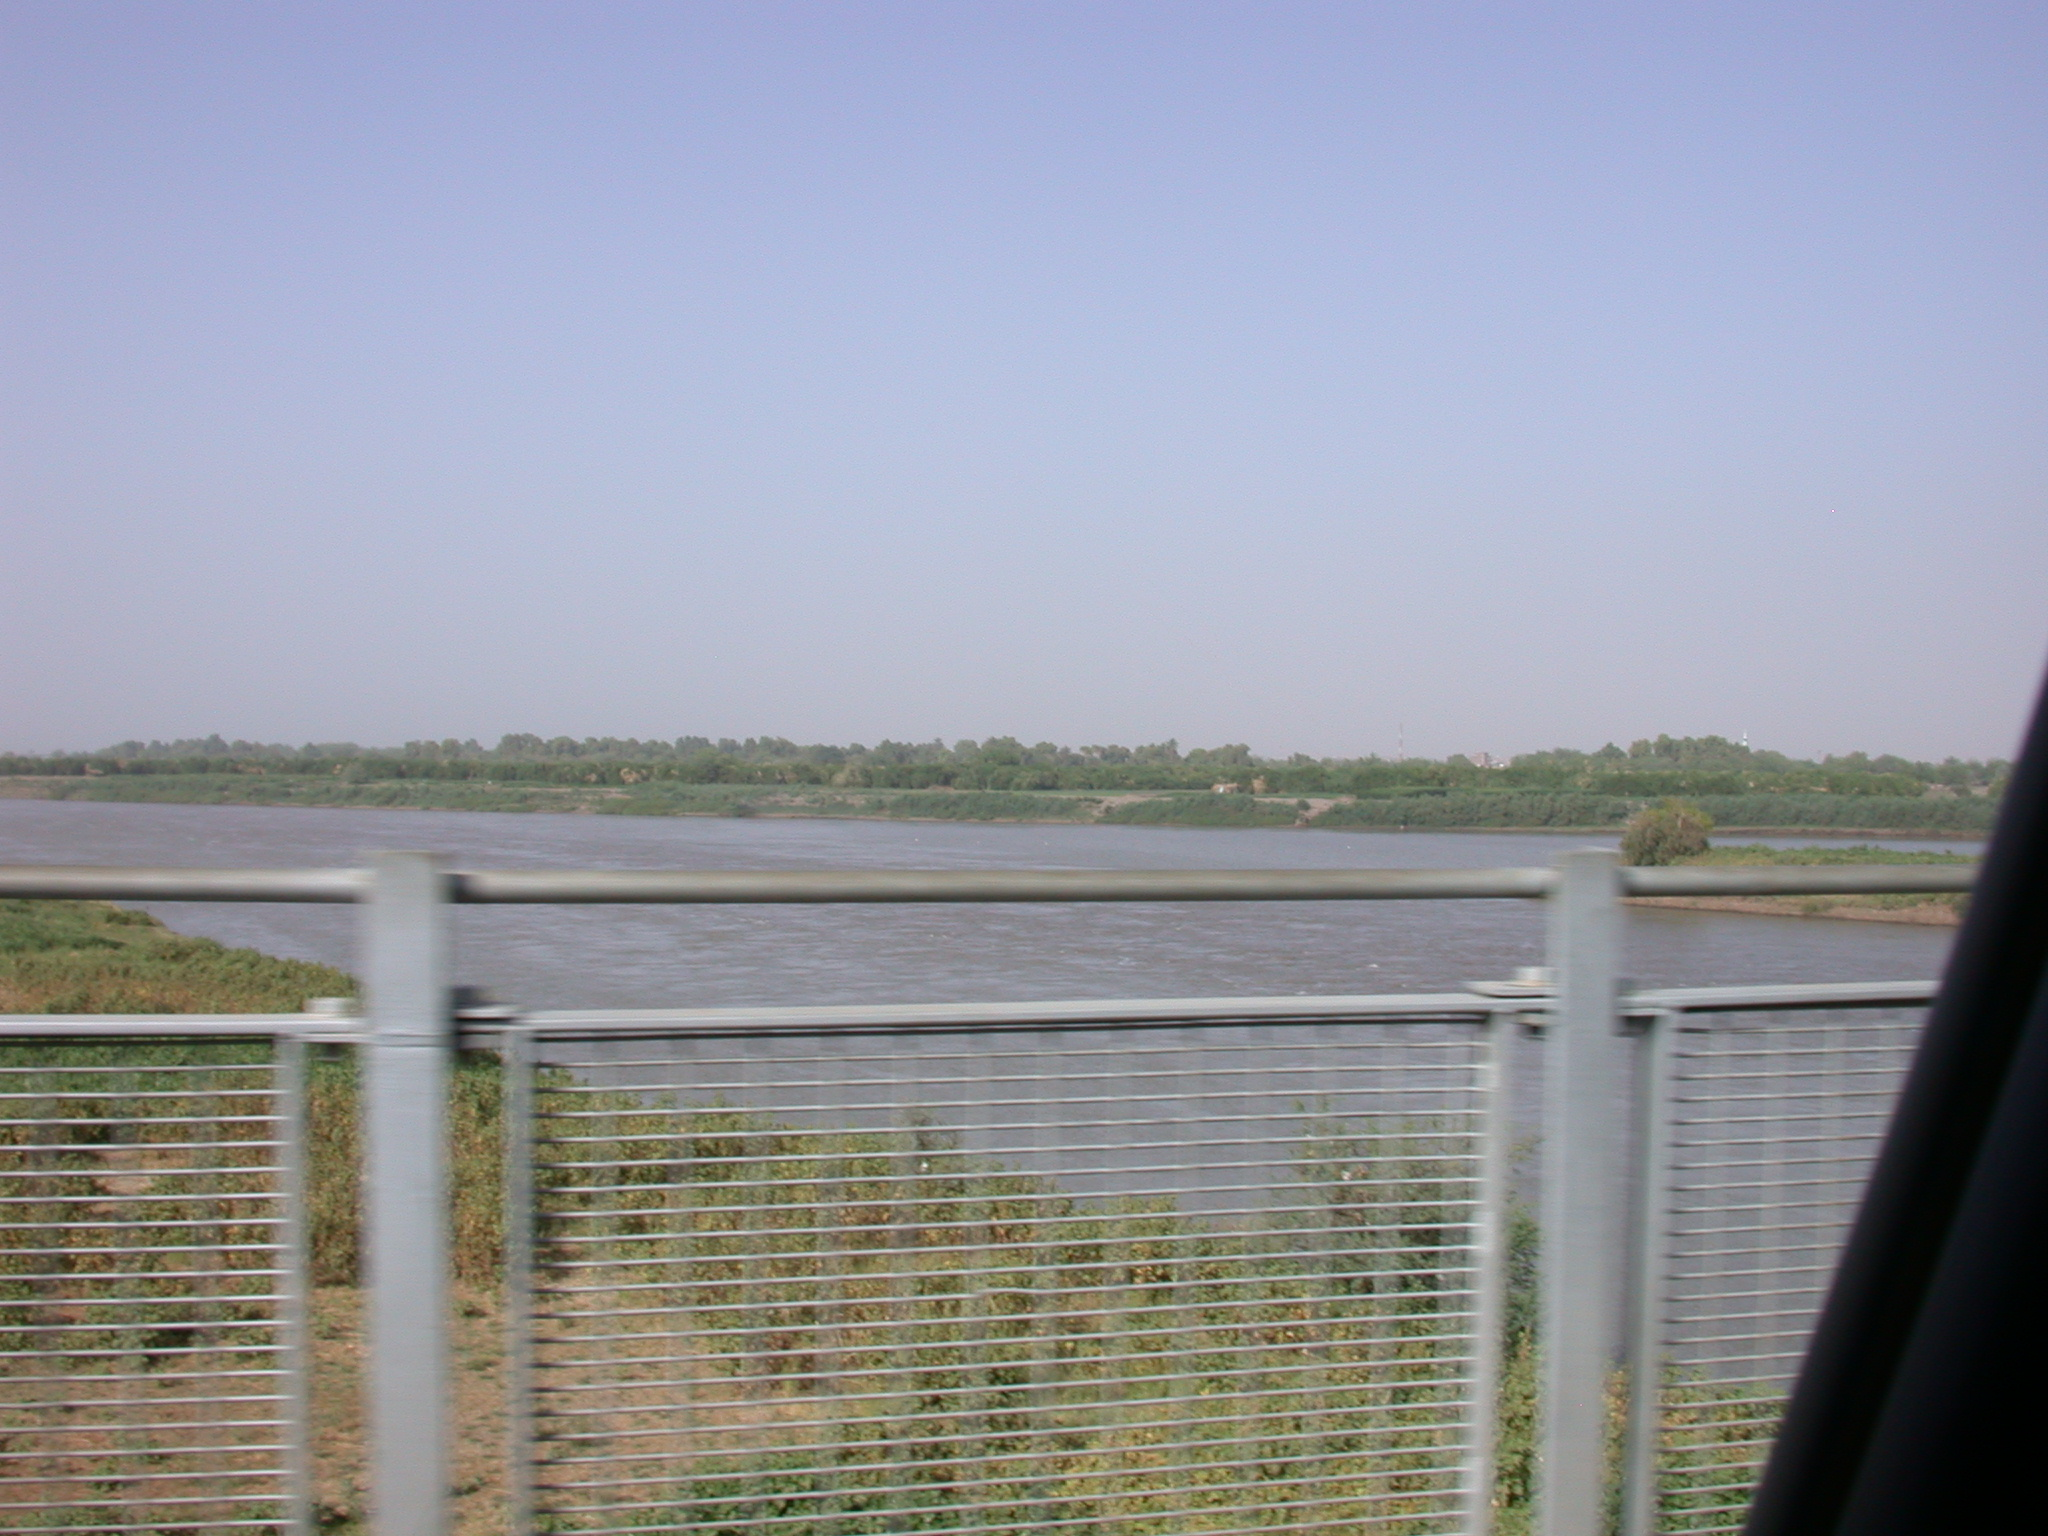 Confluence of the Blue and White Nile, Khartoum, Sudan